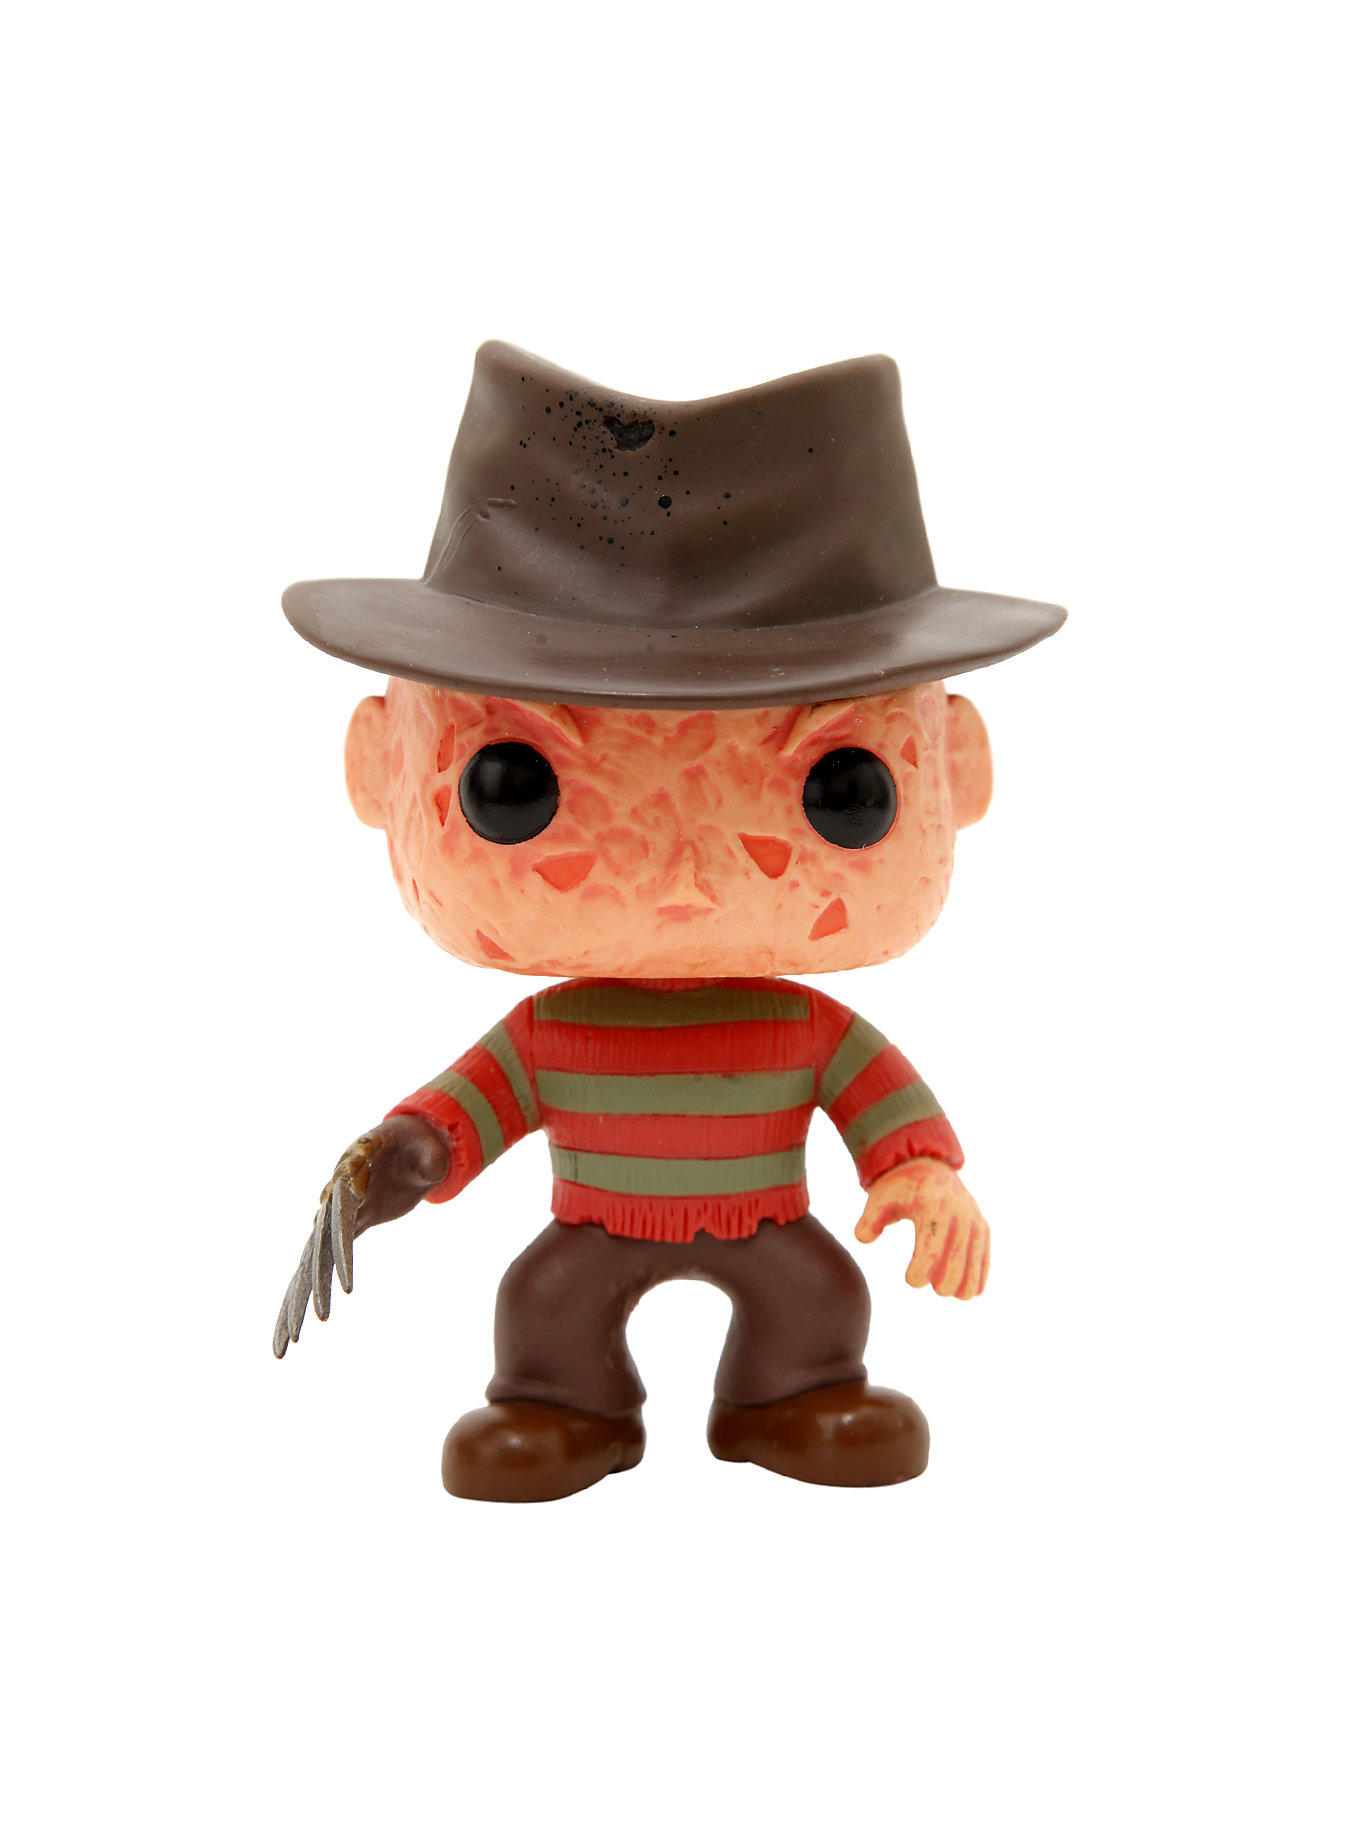 Funko A Nightmare On Elm Street Pop From Hot Topic Own